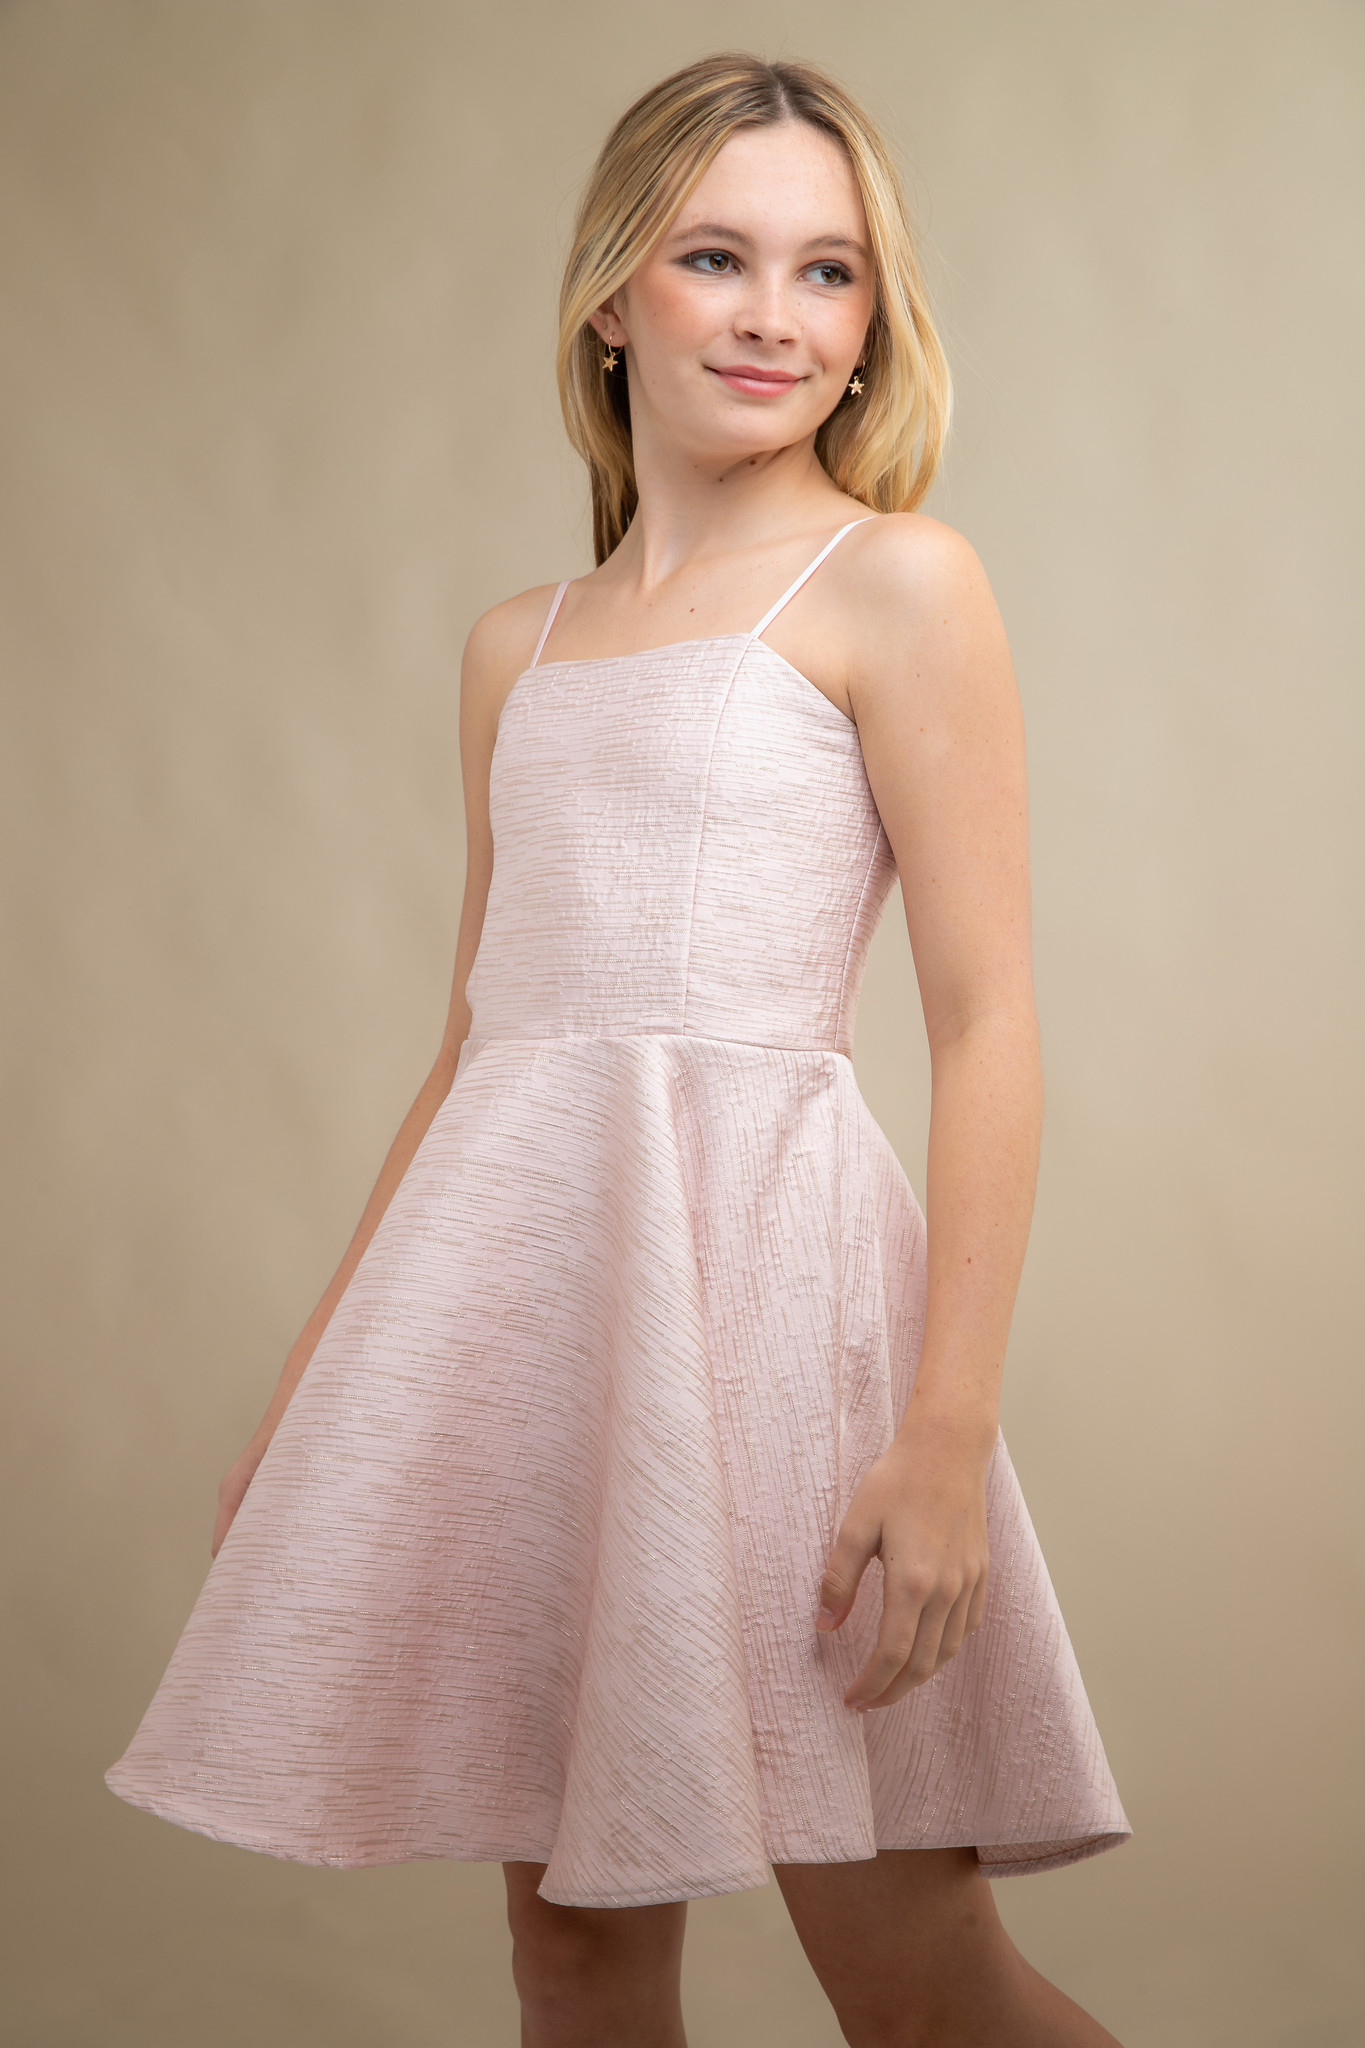 Blush Pink Jacquard Party Dress in Longer Length.